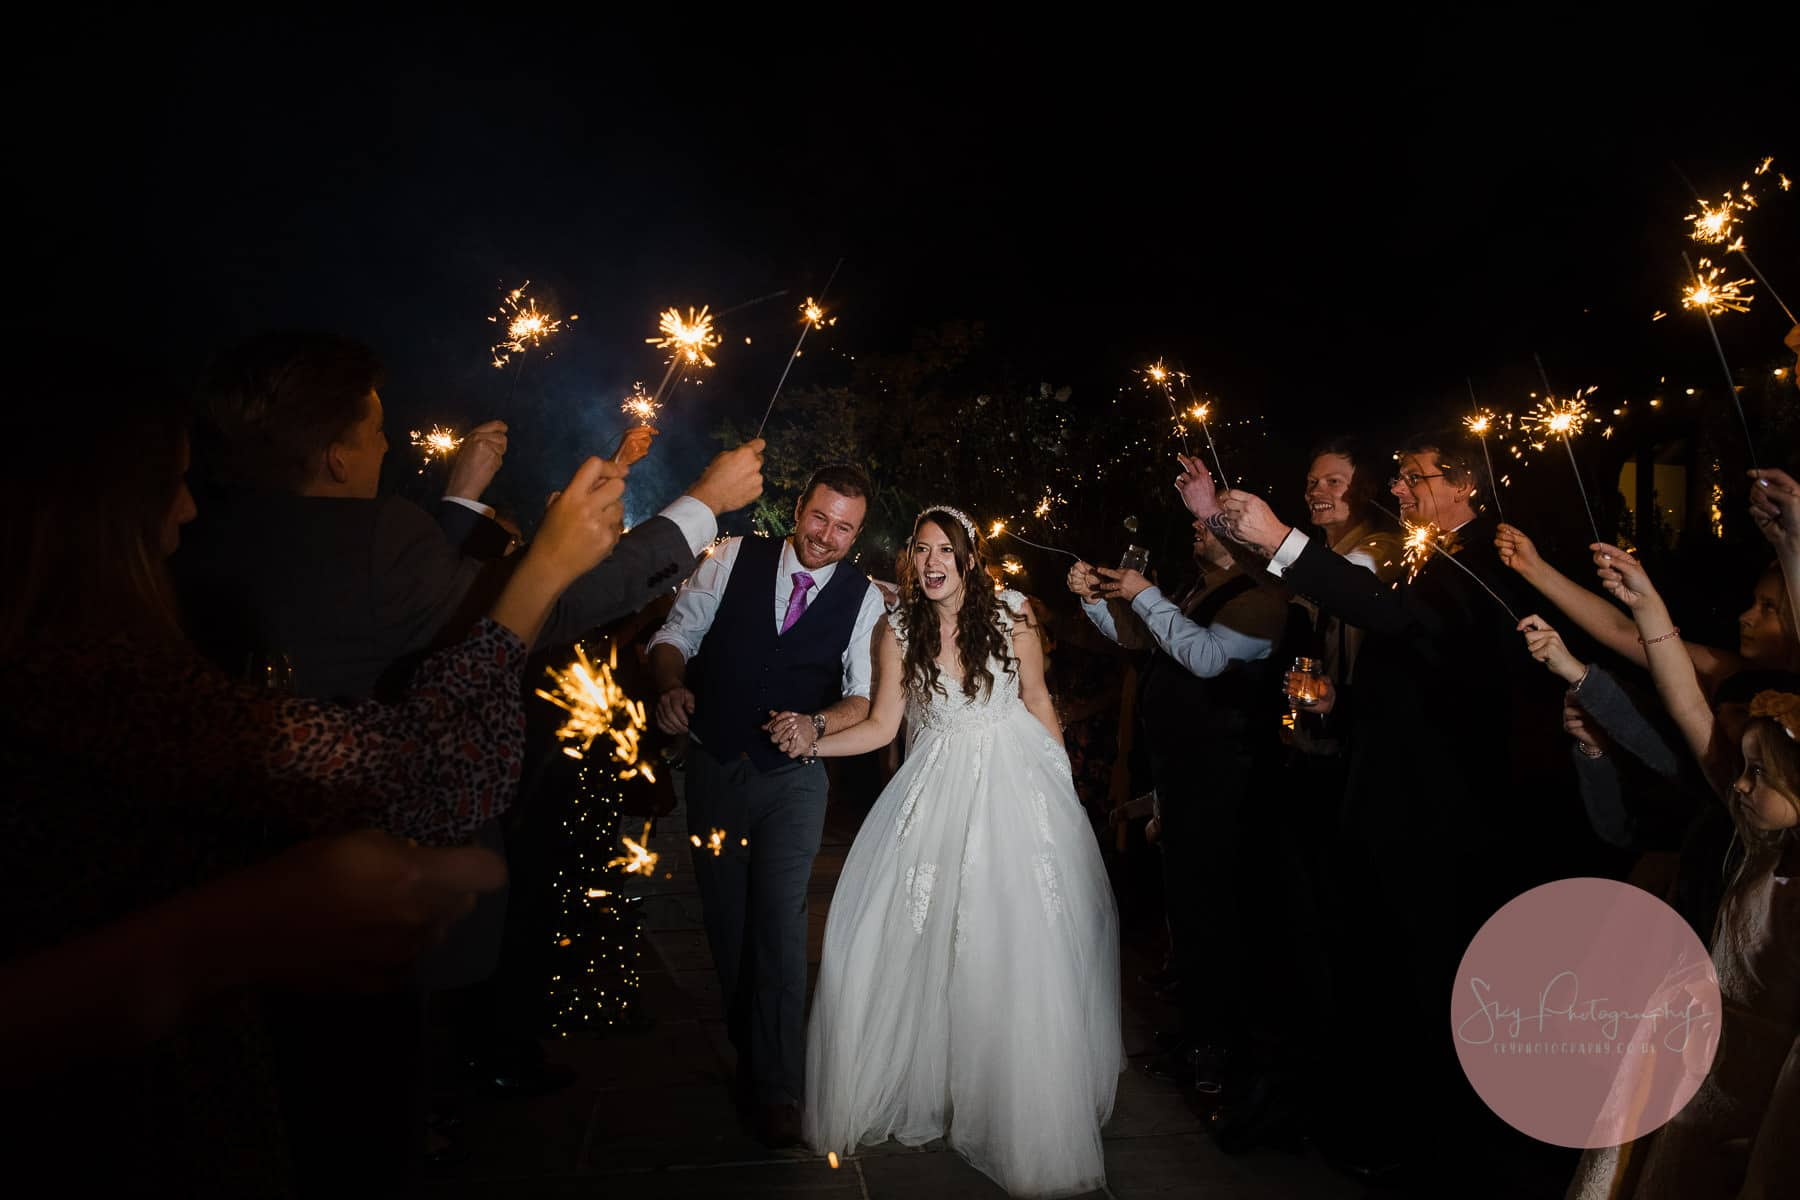 Dodmoor House Wedding Photography of the couple doing a sparkler exit